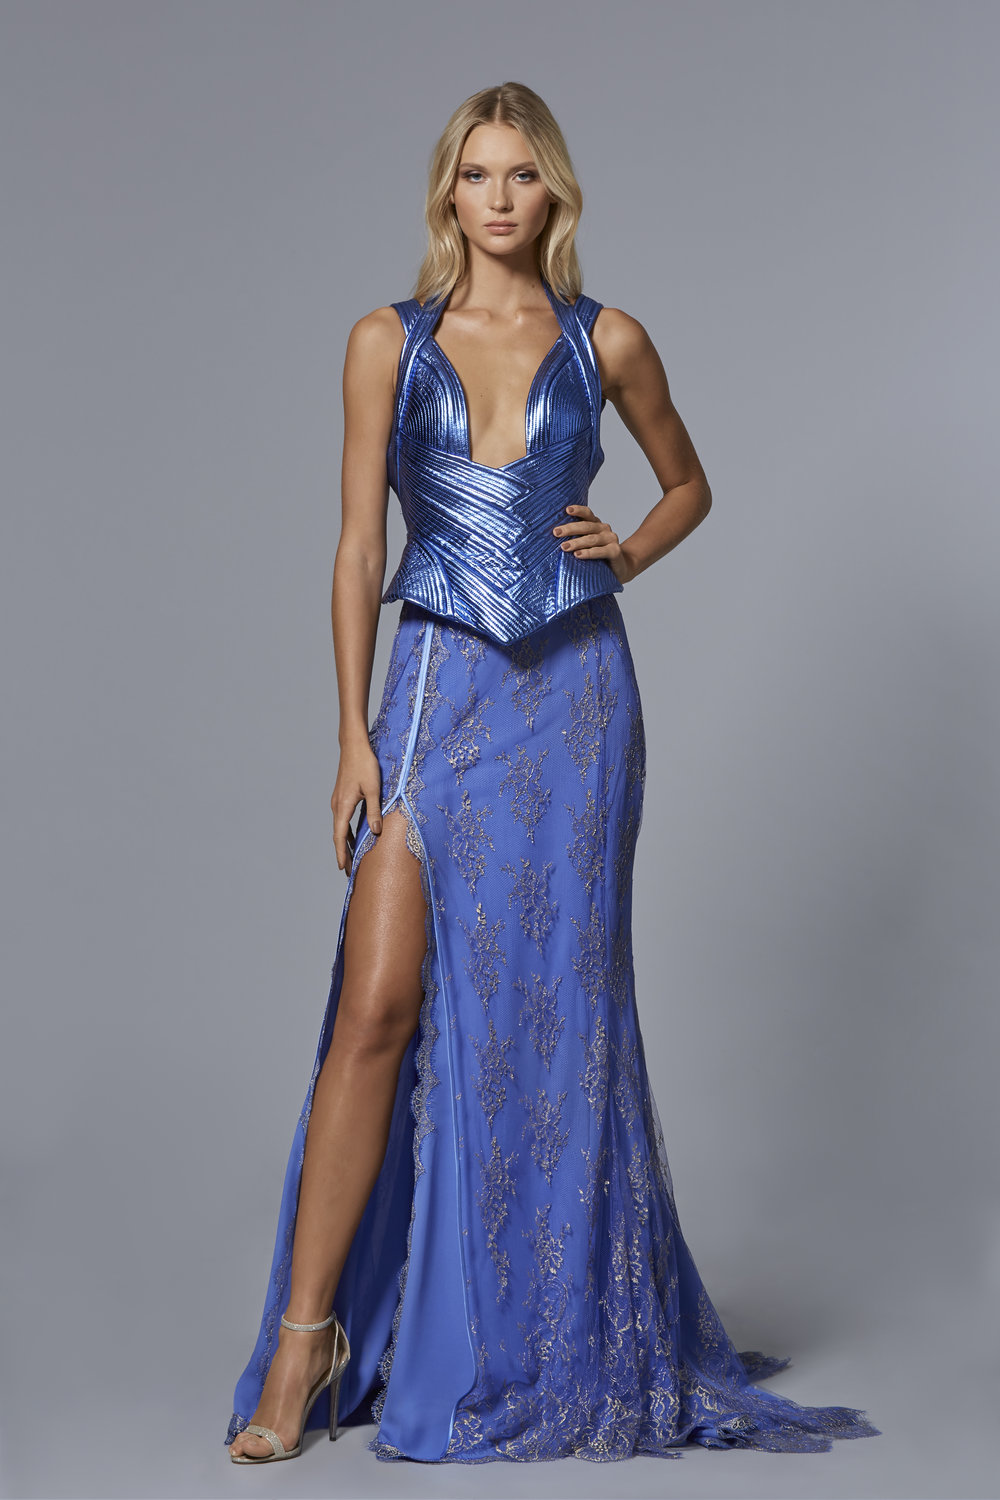 CLAUDIO CINA   LOOK 13:  Metallic Leather Corset with Trapunto Stitching  Metallic Lace Floor Length Skirt with Front Slit